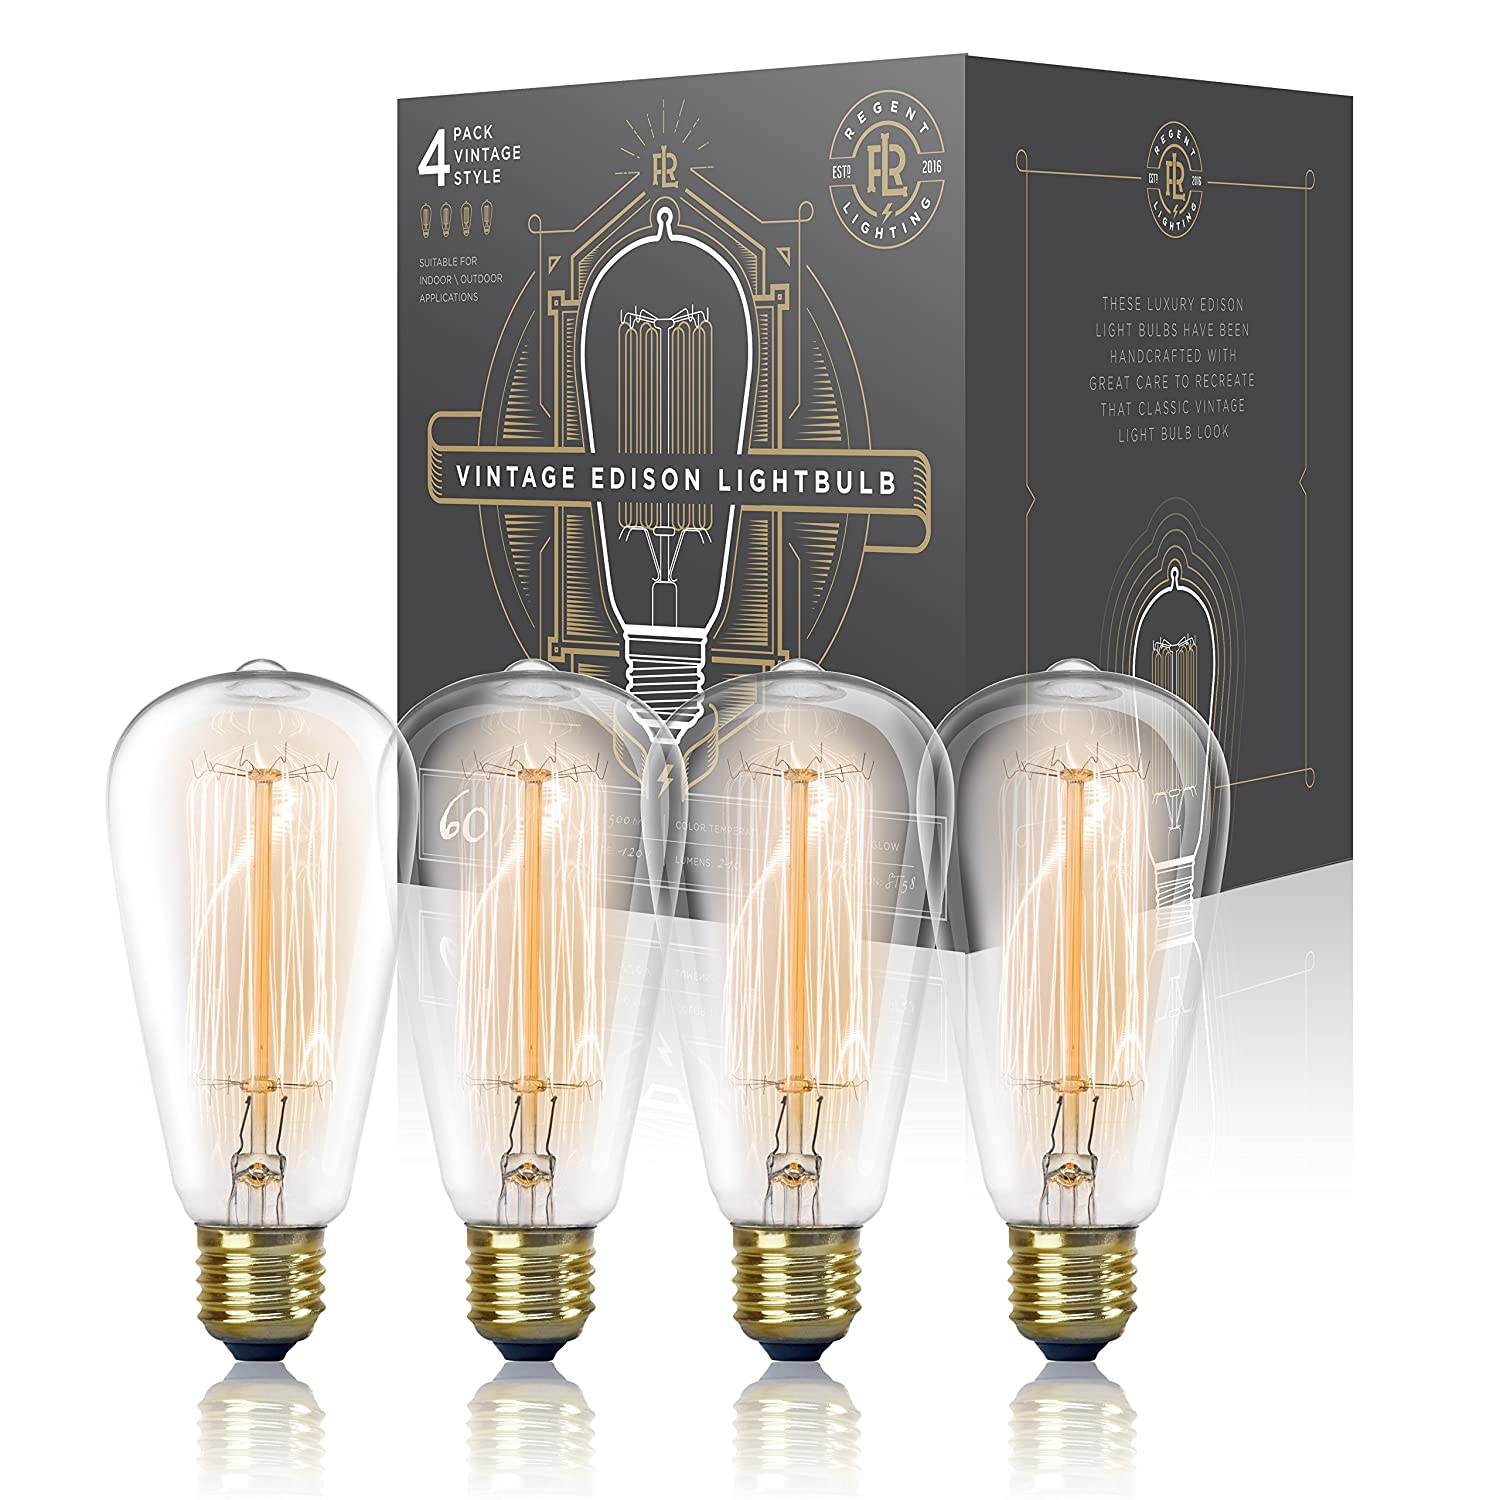 Vintage Edison Light Bulb 60W (4 Pack) - Dimmable Exposed Filament ...